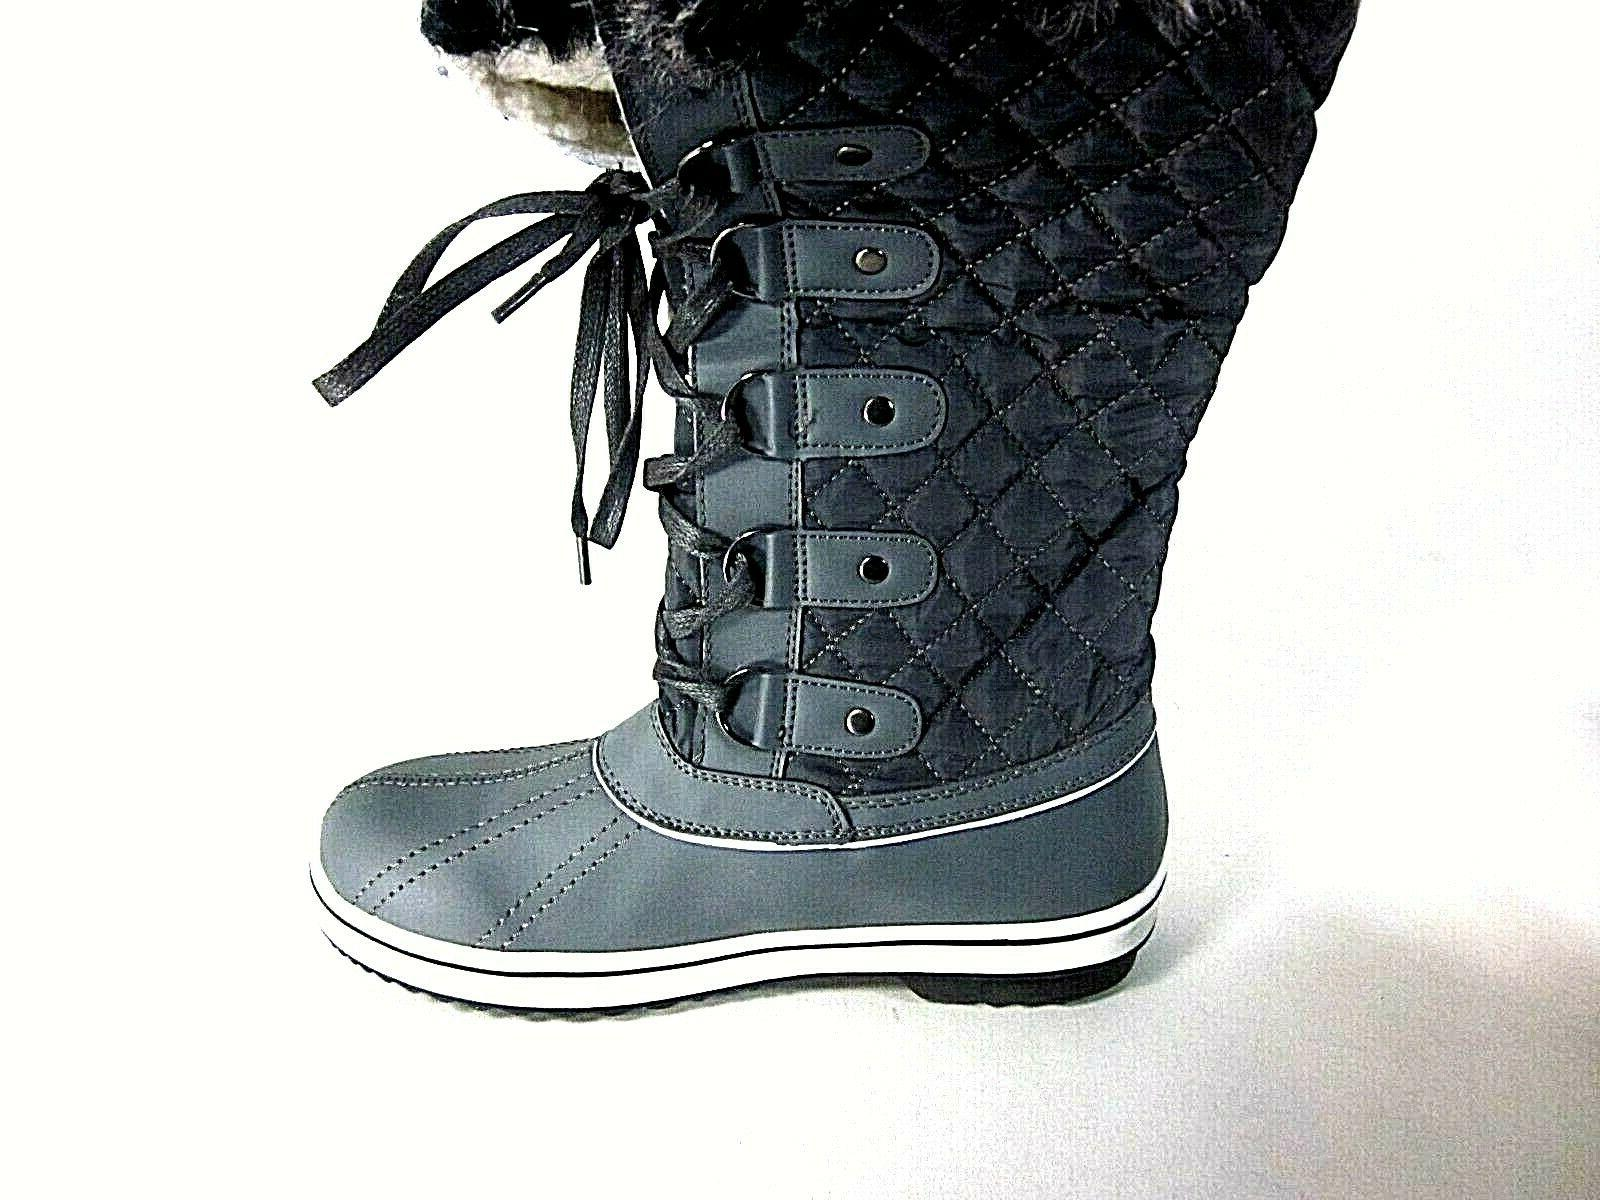 ALEADER Lace Up Cold Boots, Dark Grey US Size M